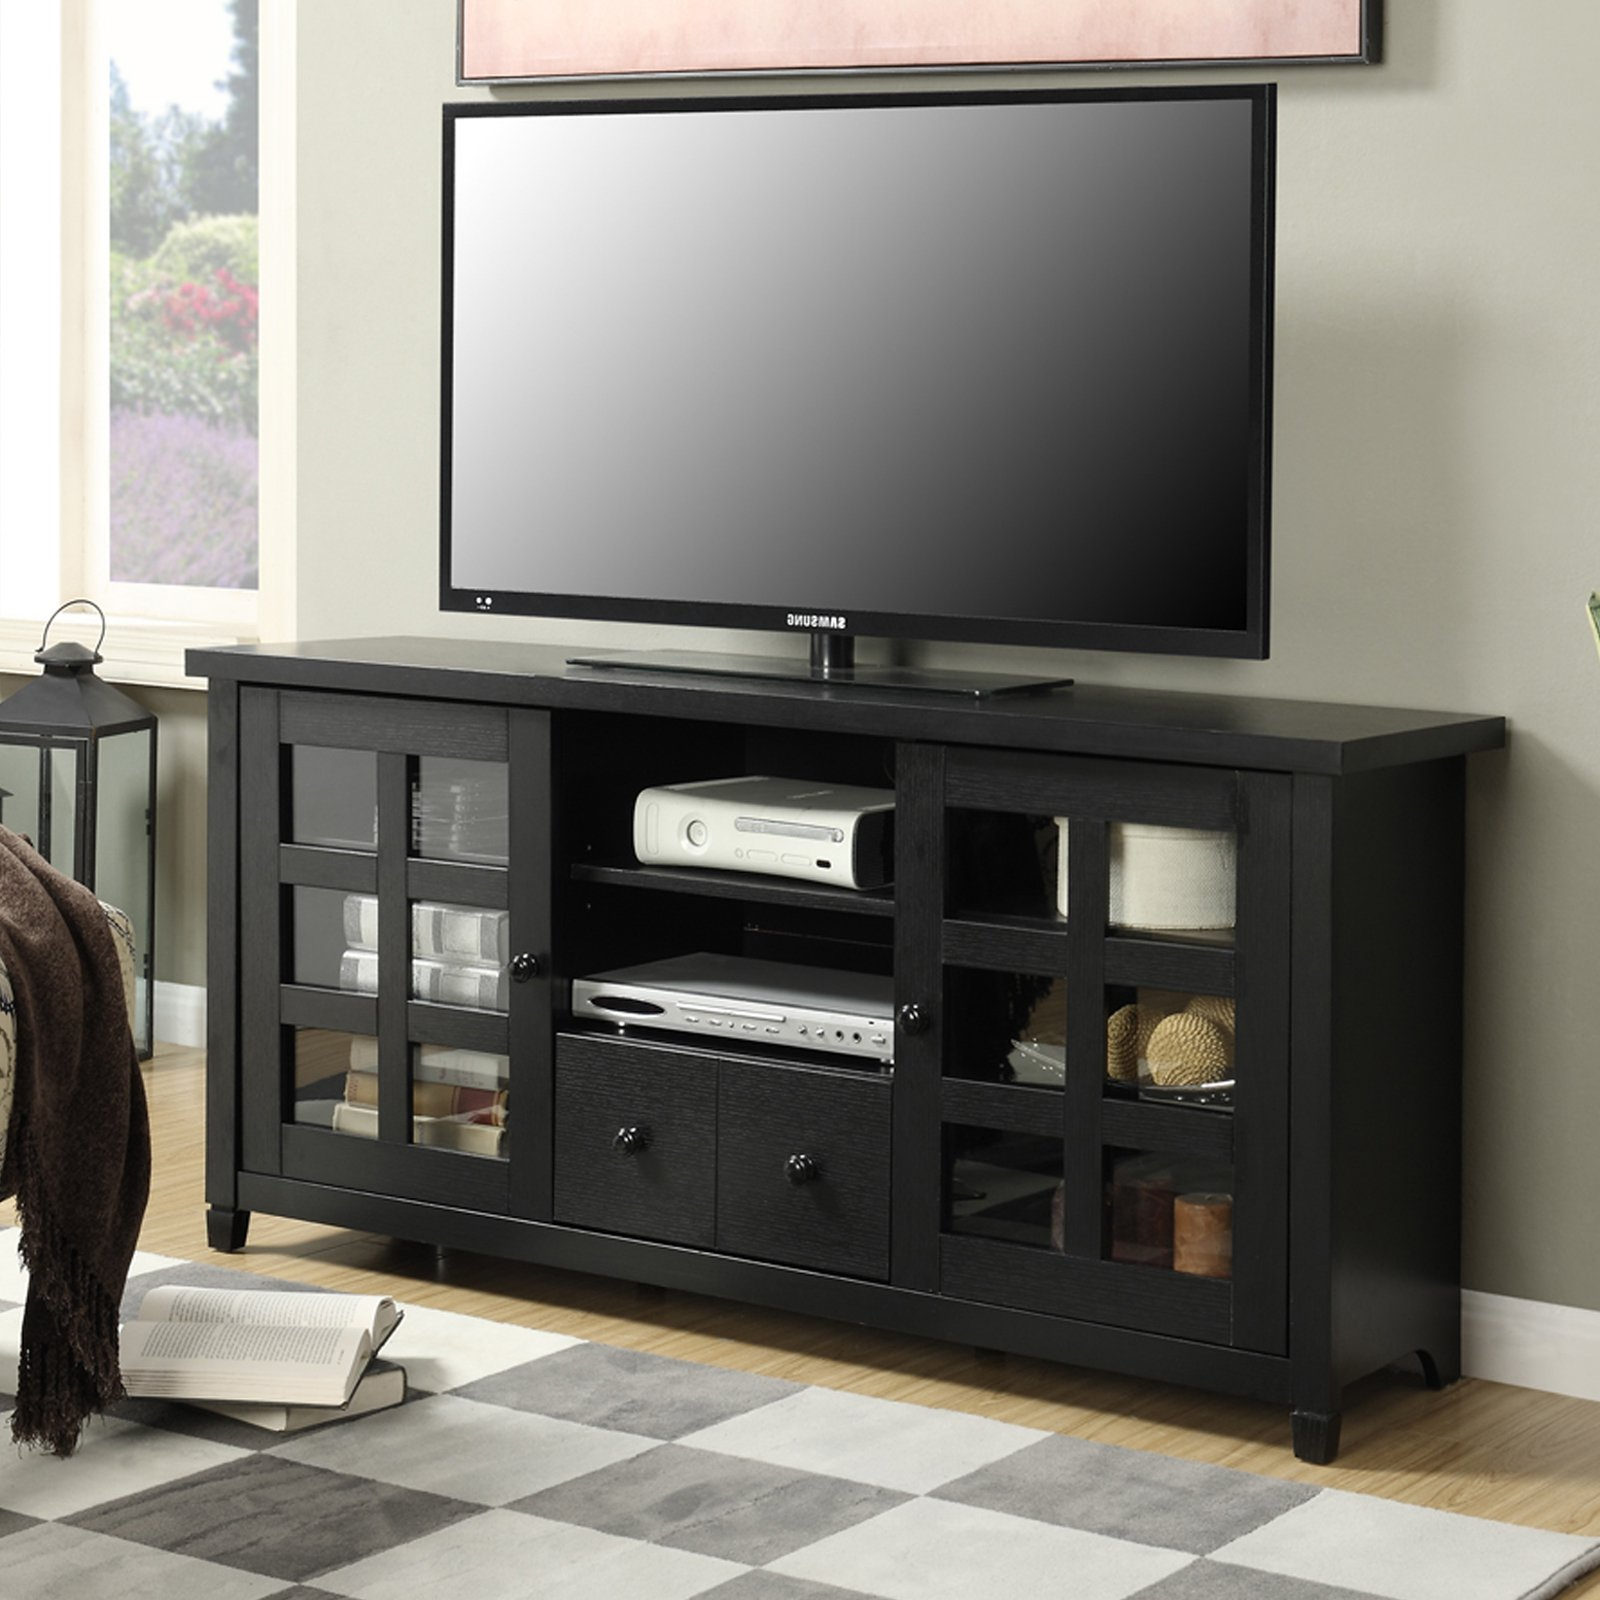 Tv Stands & Entertainment Centers | Hayneedle Throughout Murphy 72 Inch Tv Stands (View 18 of 20)